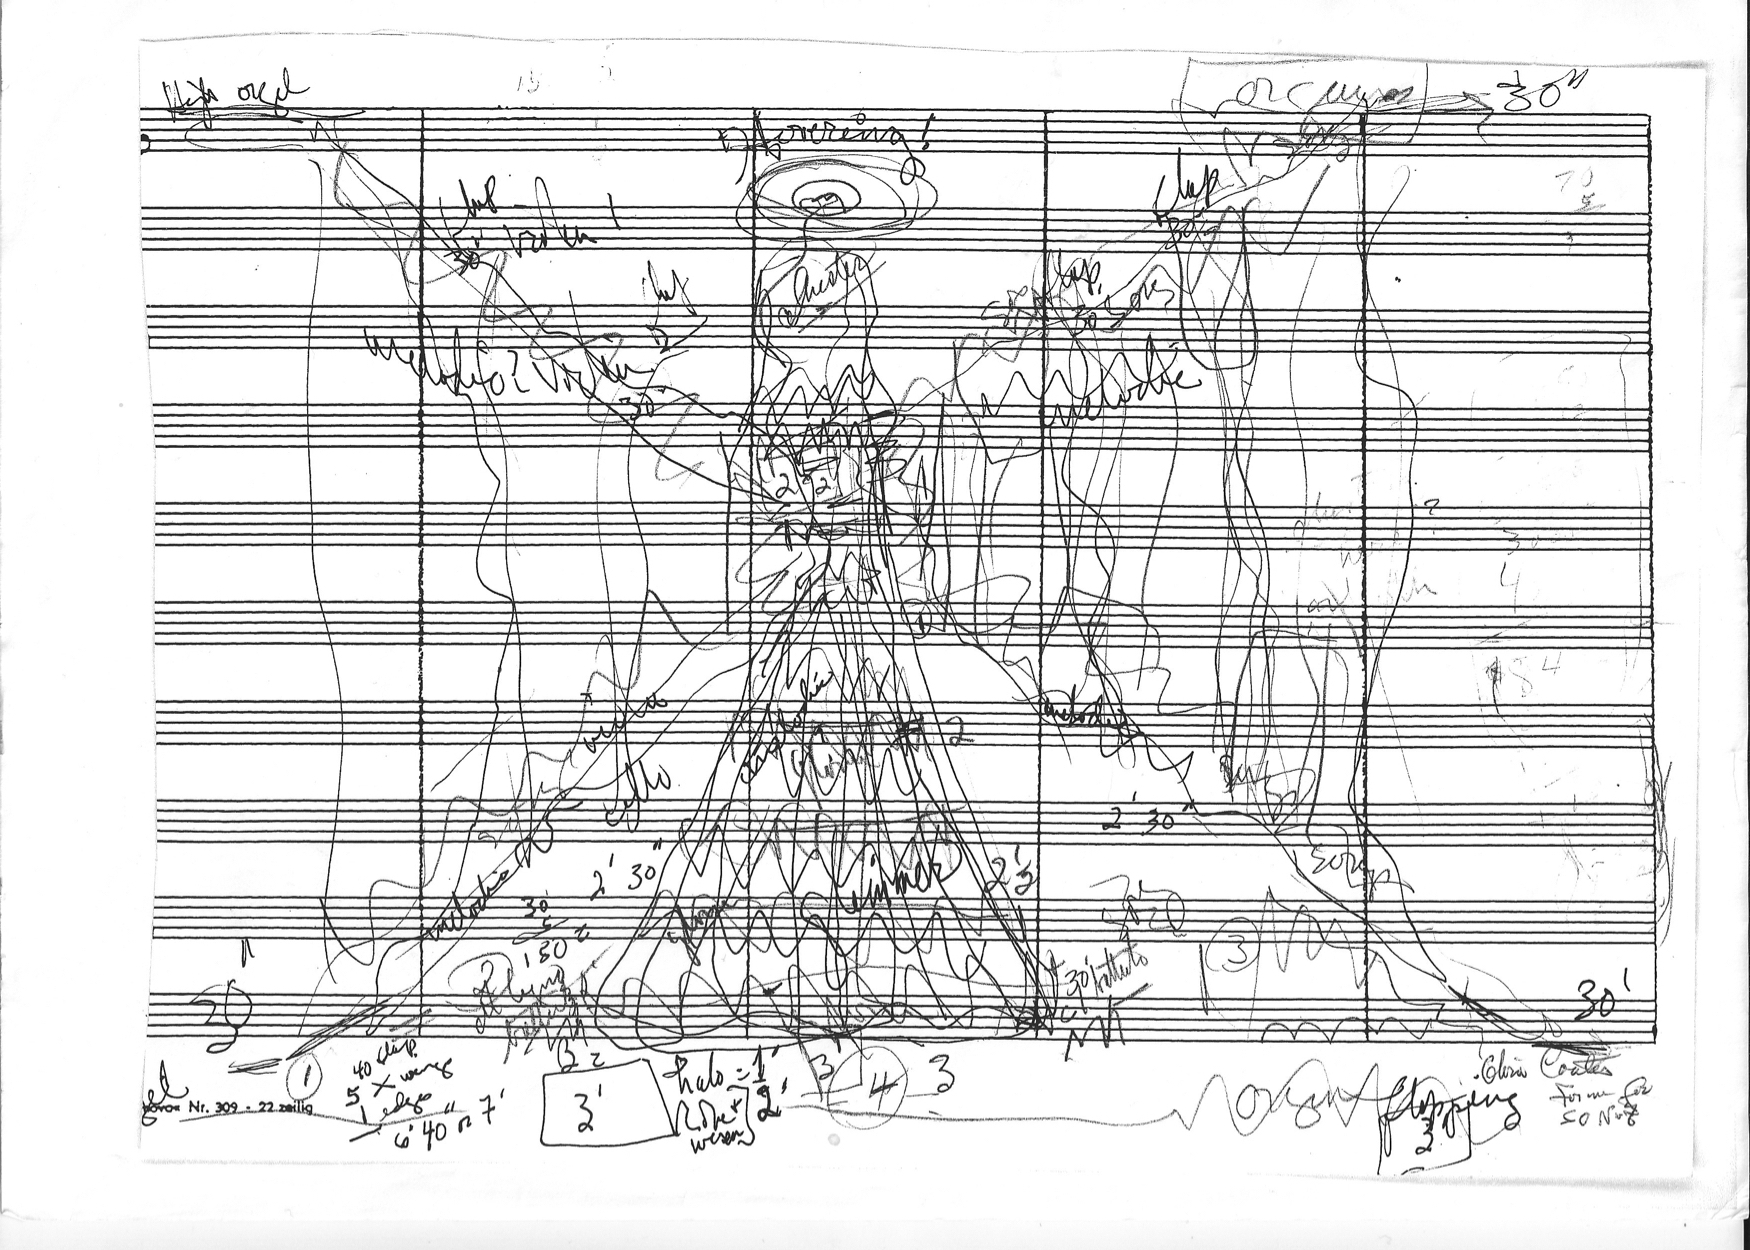 A pre-composition sketch by Gloria Coates